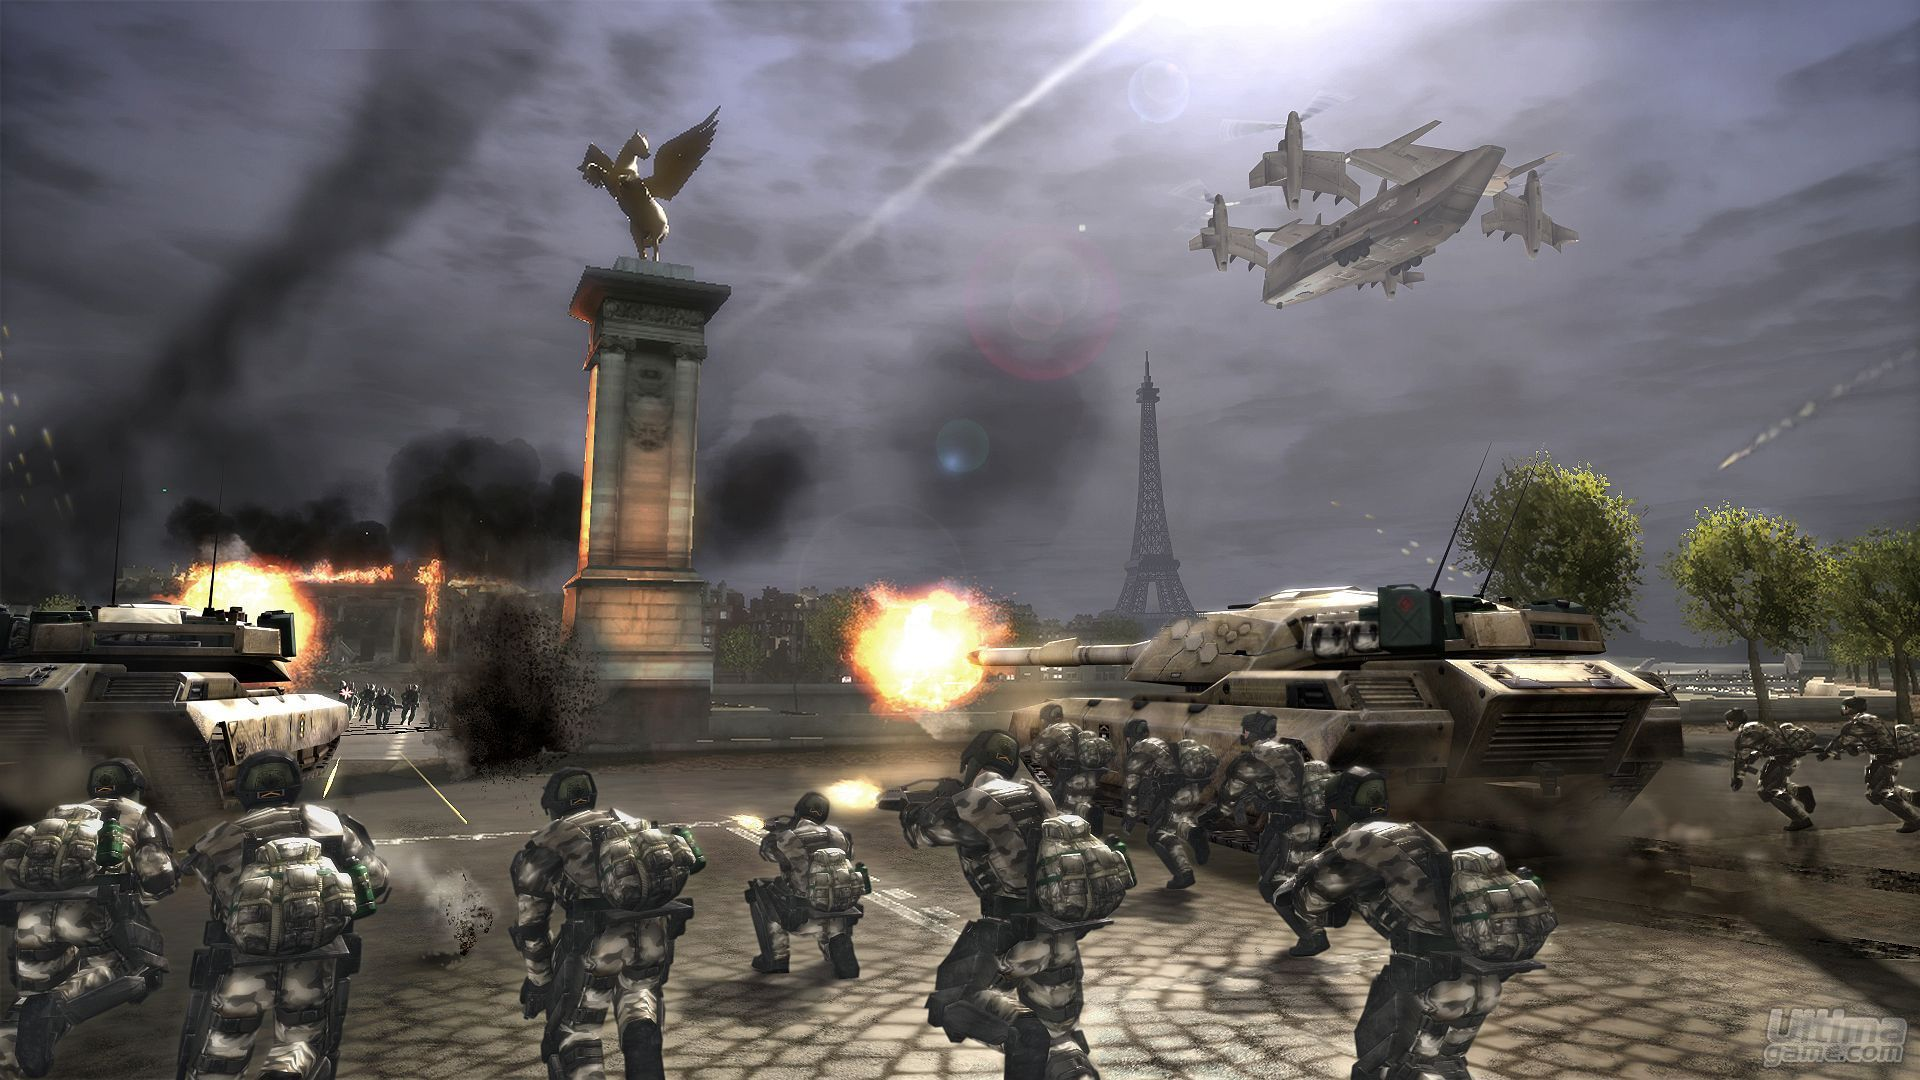 Pin by Rocketpack Man on Futuristic combat troopers Best